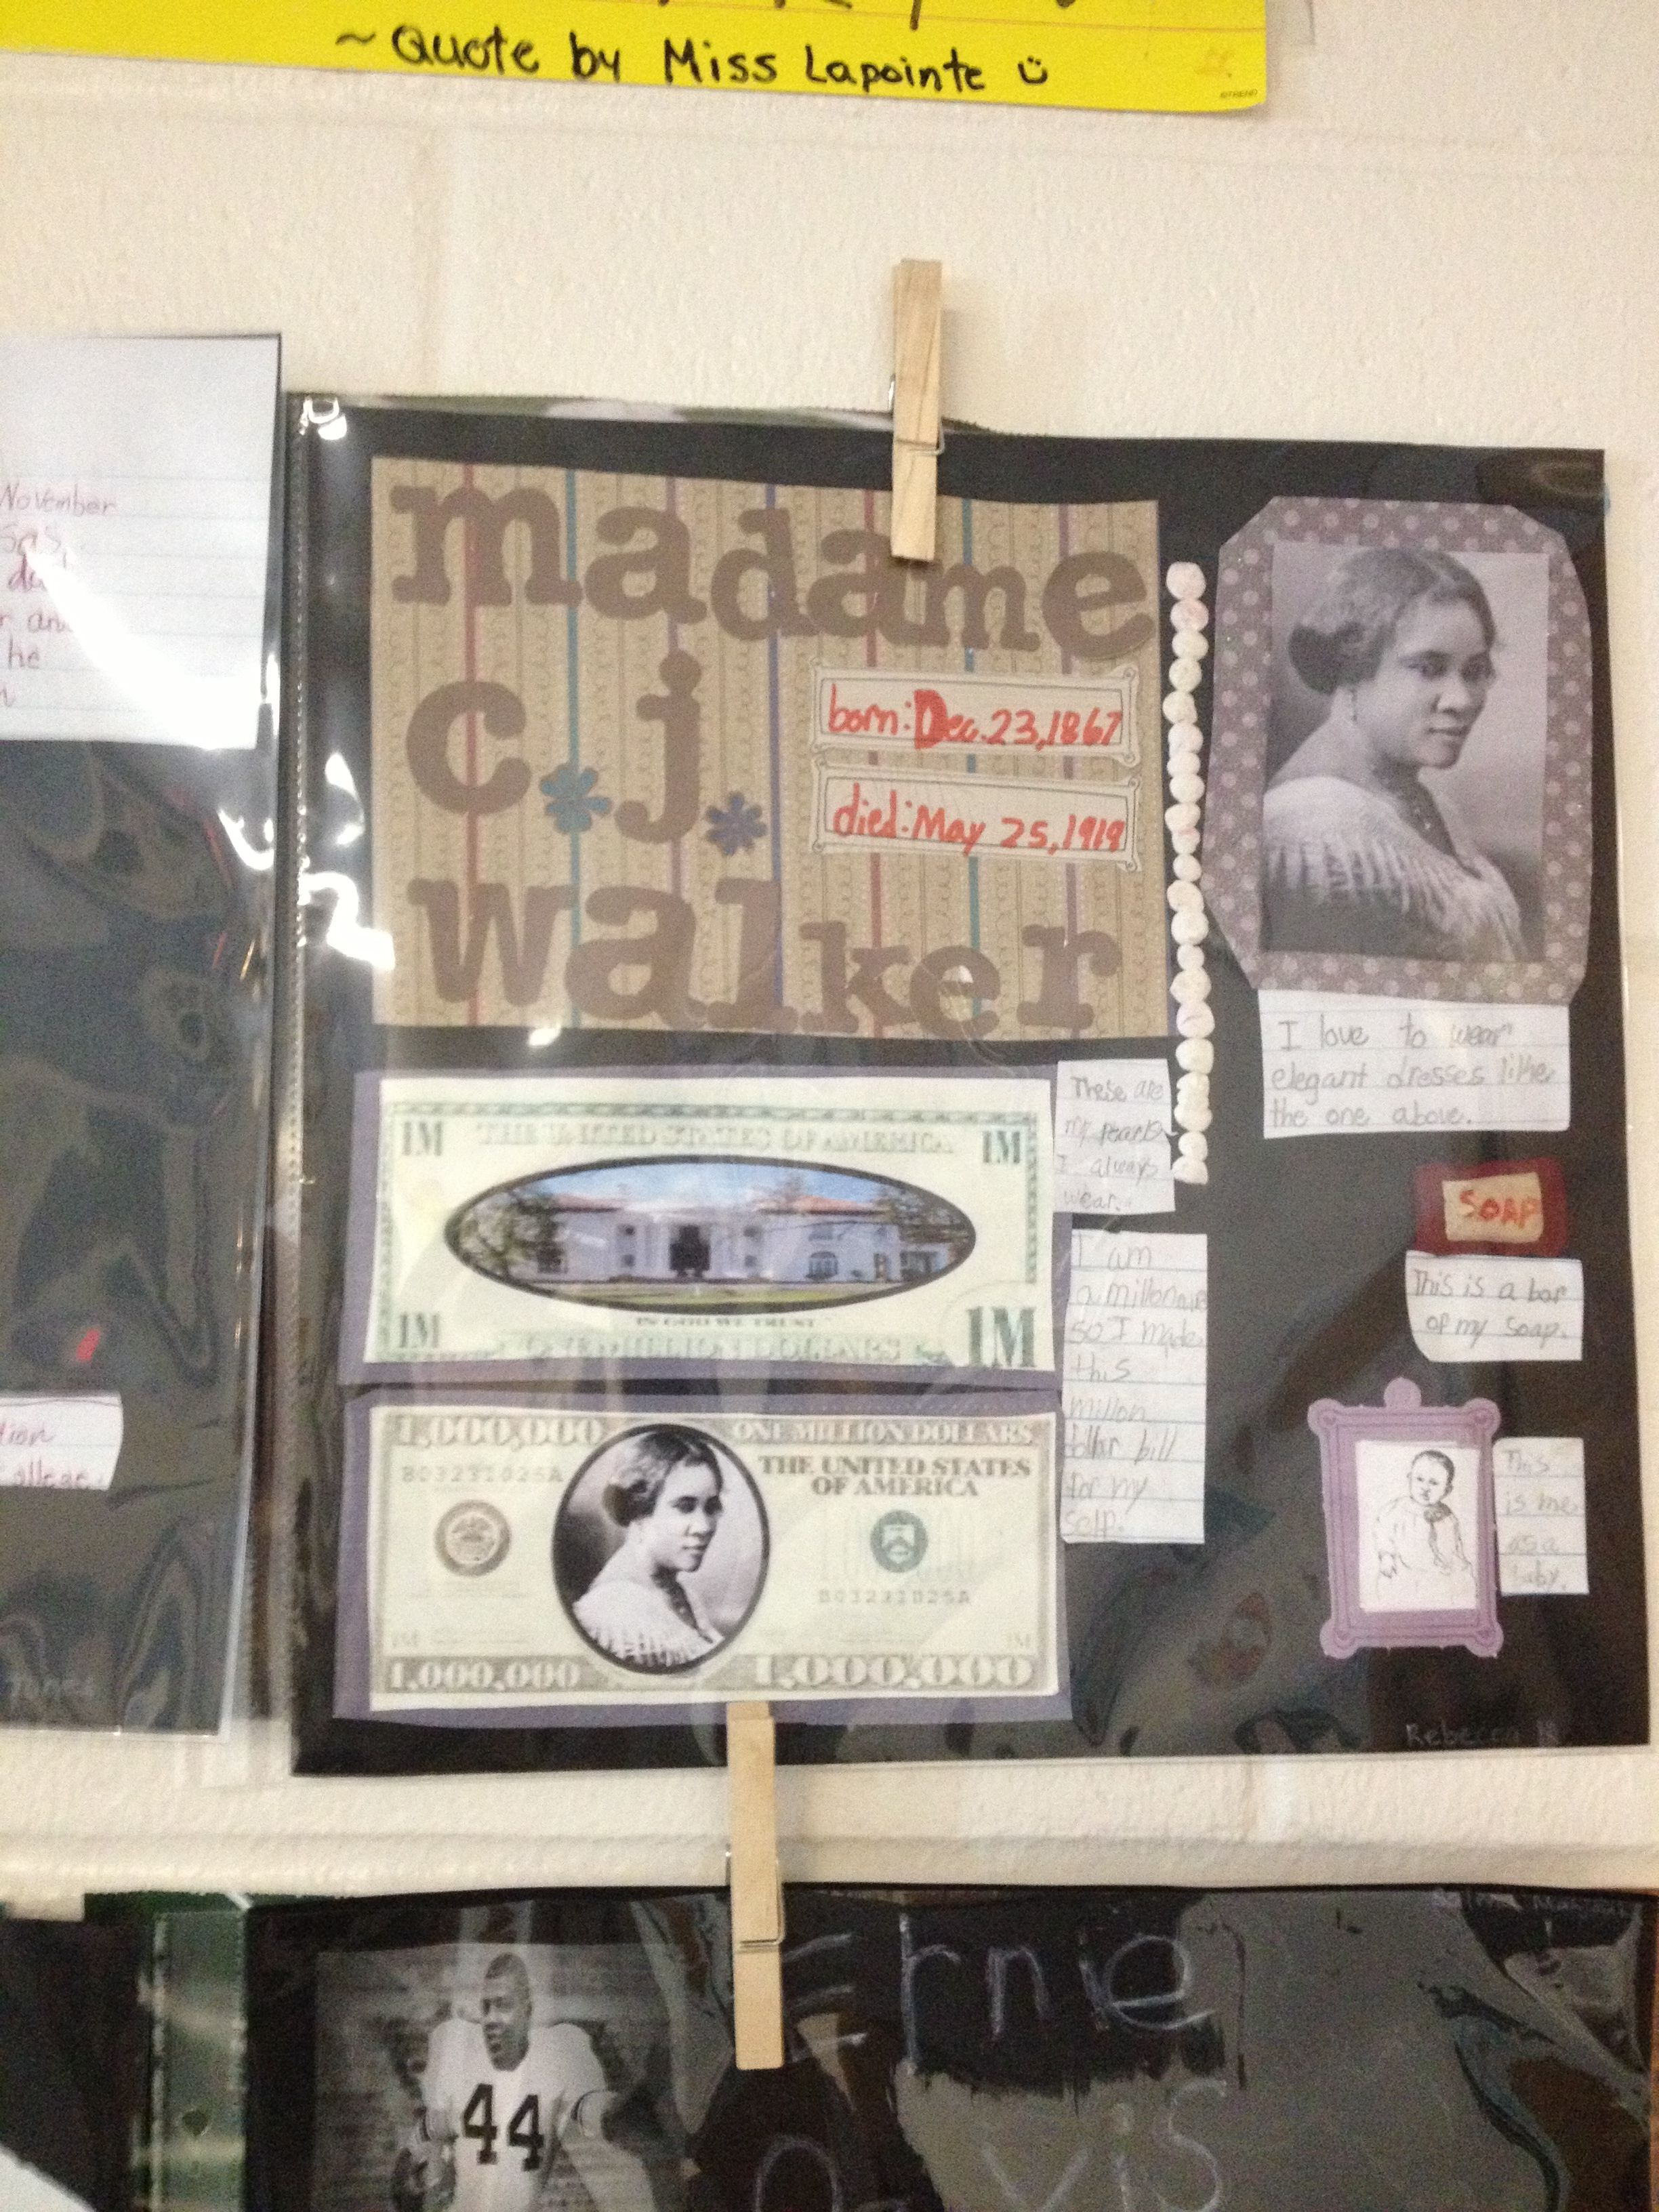 Scrapbook ideas history projects - Had My Students Do A Scrapbook Black History Project Each Student Was Given A 12x12